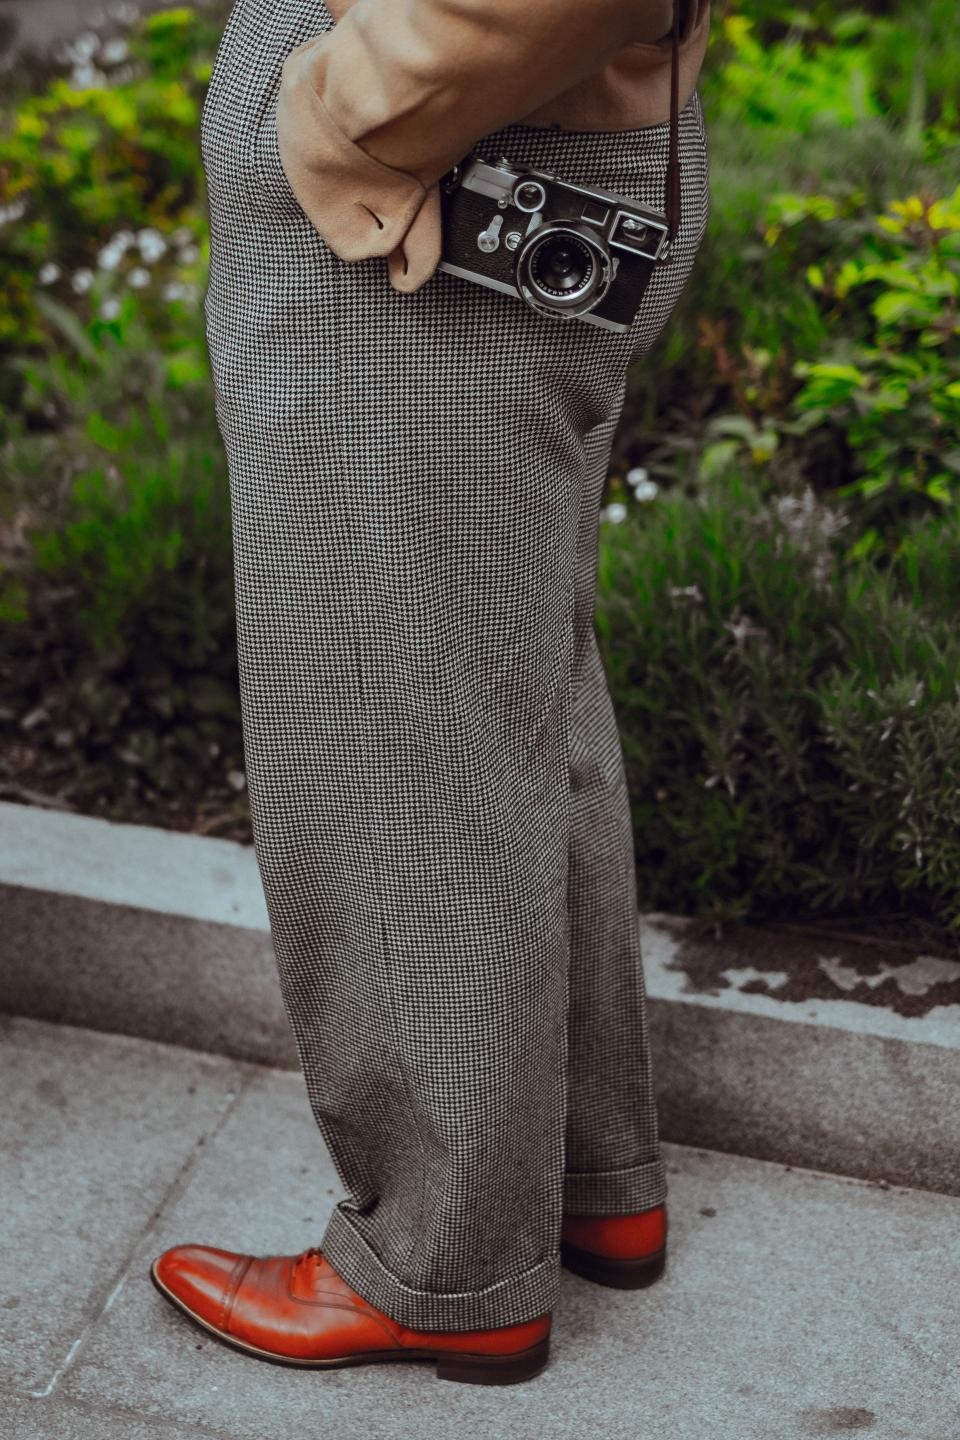 people man old fashion pants leather shoes camera photographer